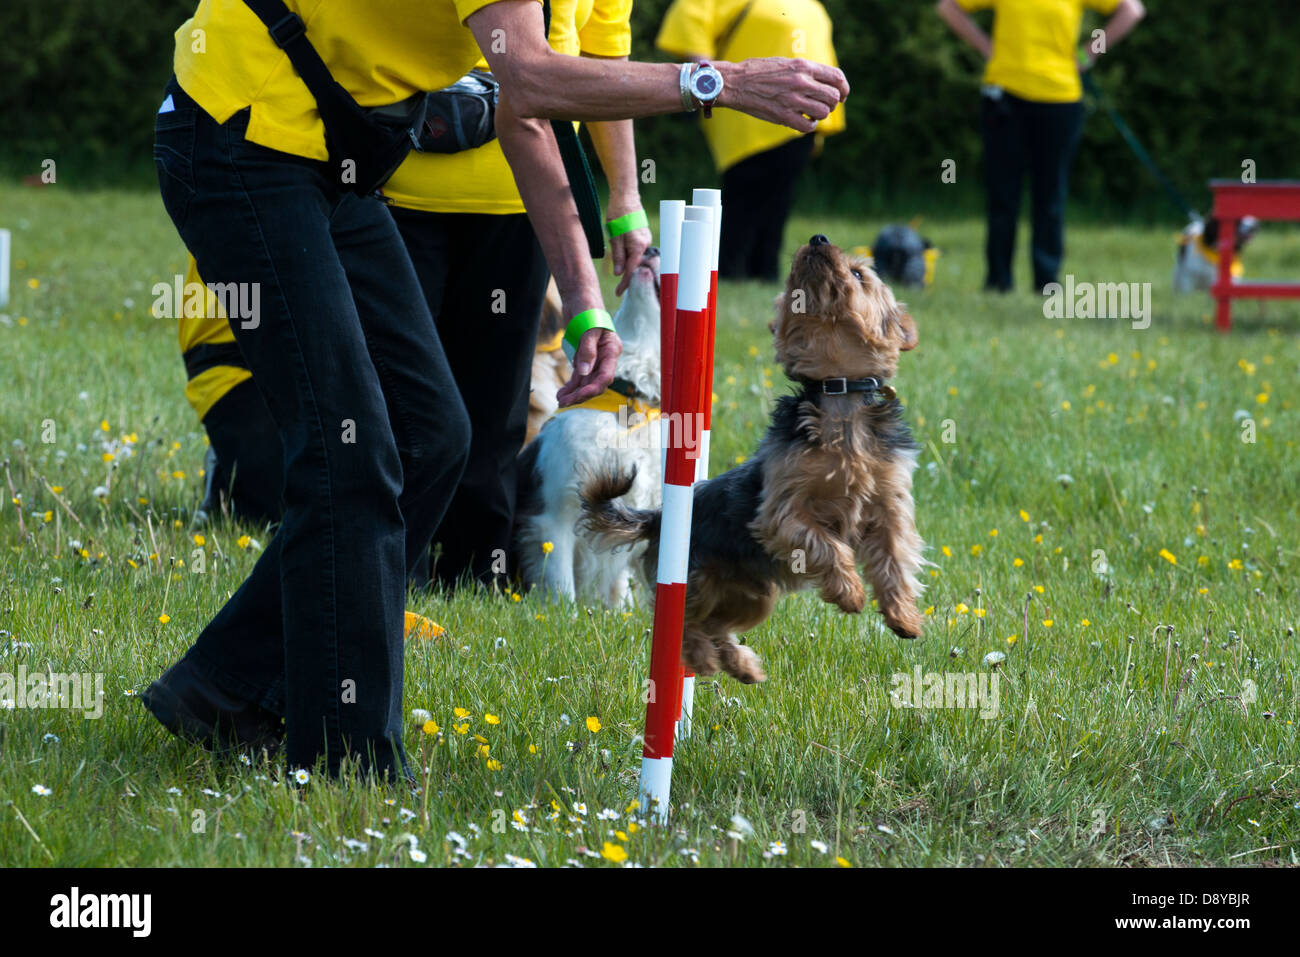 Canine Obedience Dog Display at the Overlord show, Waterlooville, Hampshire, UK - Stock Image